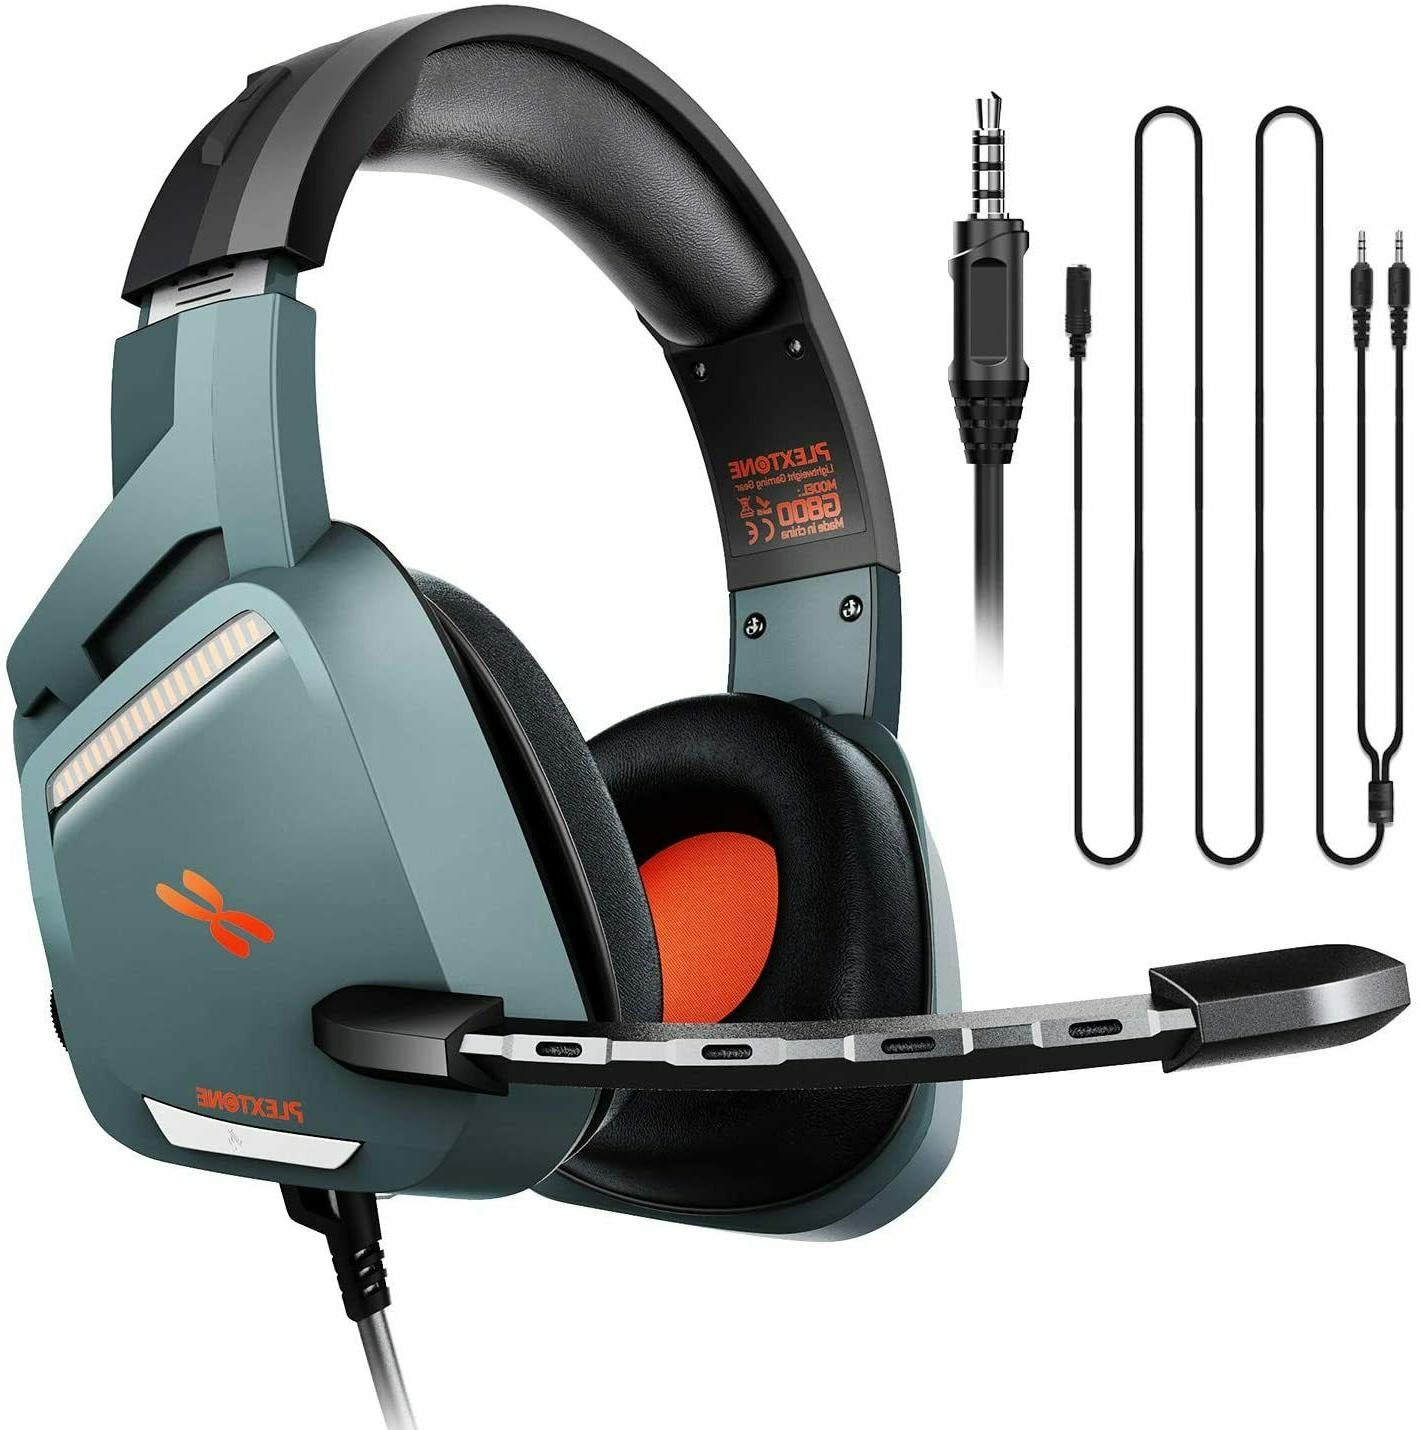 Cancelling Ear With Mic For Xbox